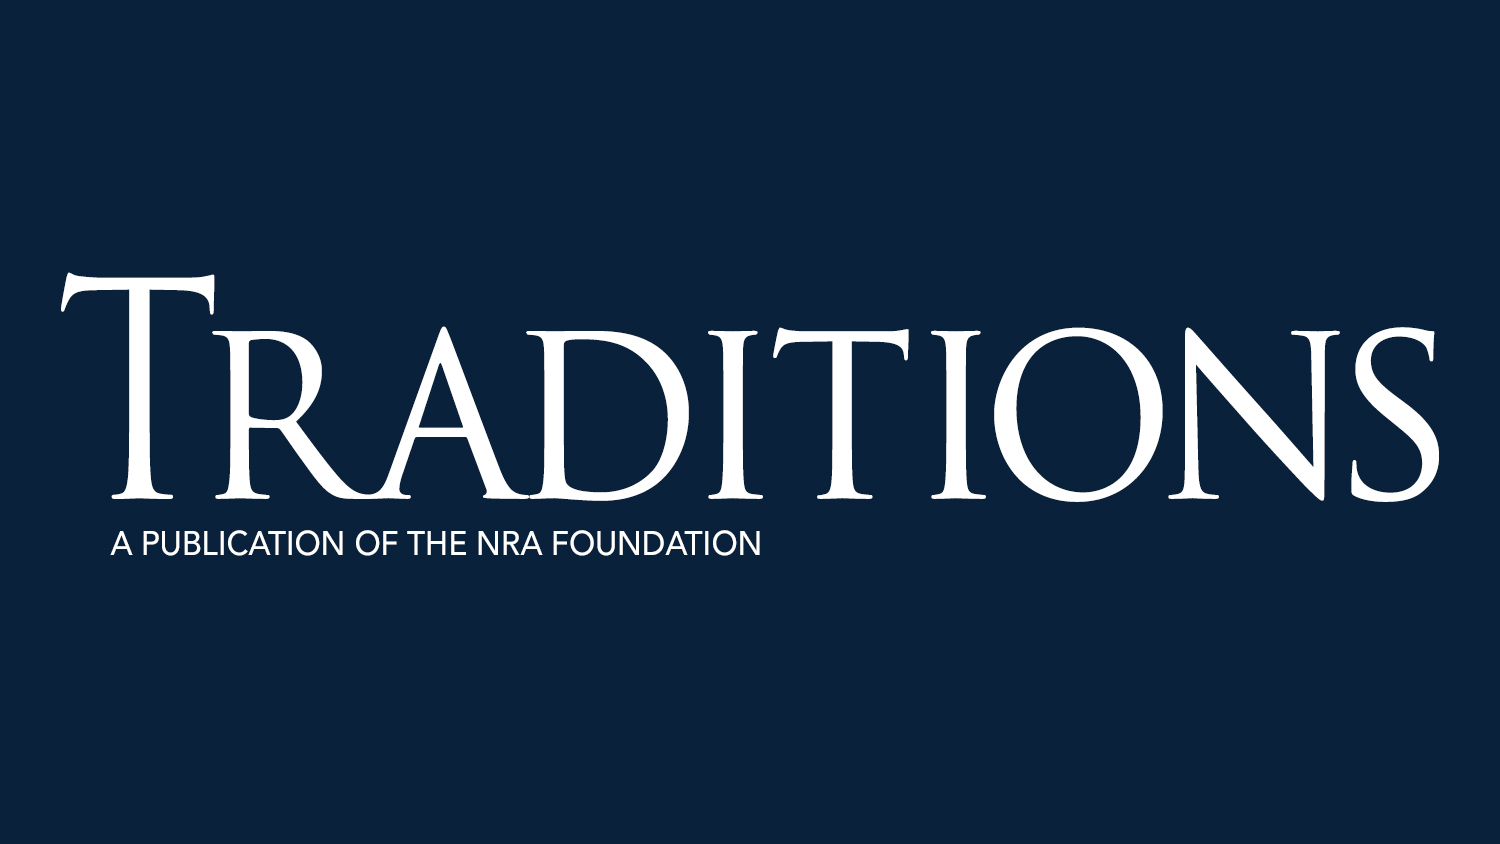 Read the Latest Issue of Traditions From The NRA Foundation